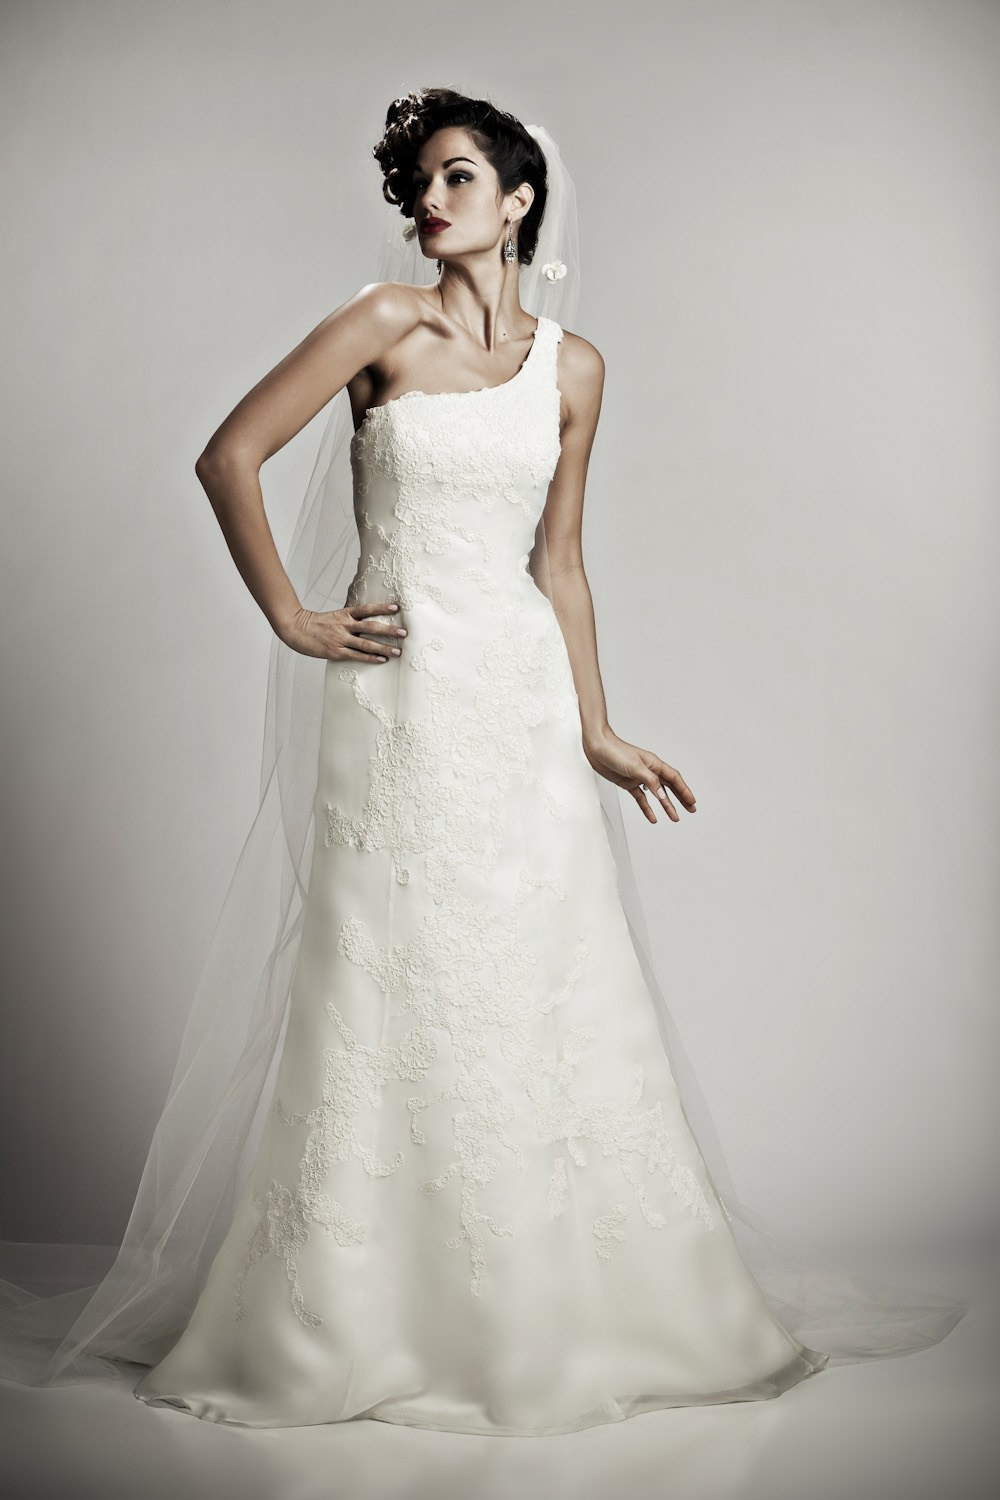 Romantic One Shoulder Fit And Flare Ivory Lace Bridal Gown